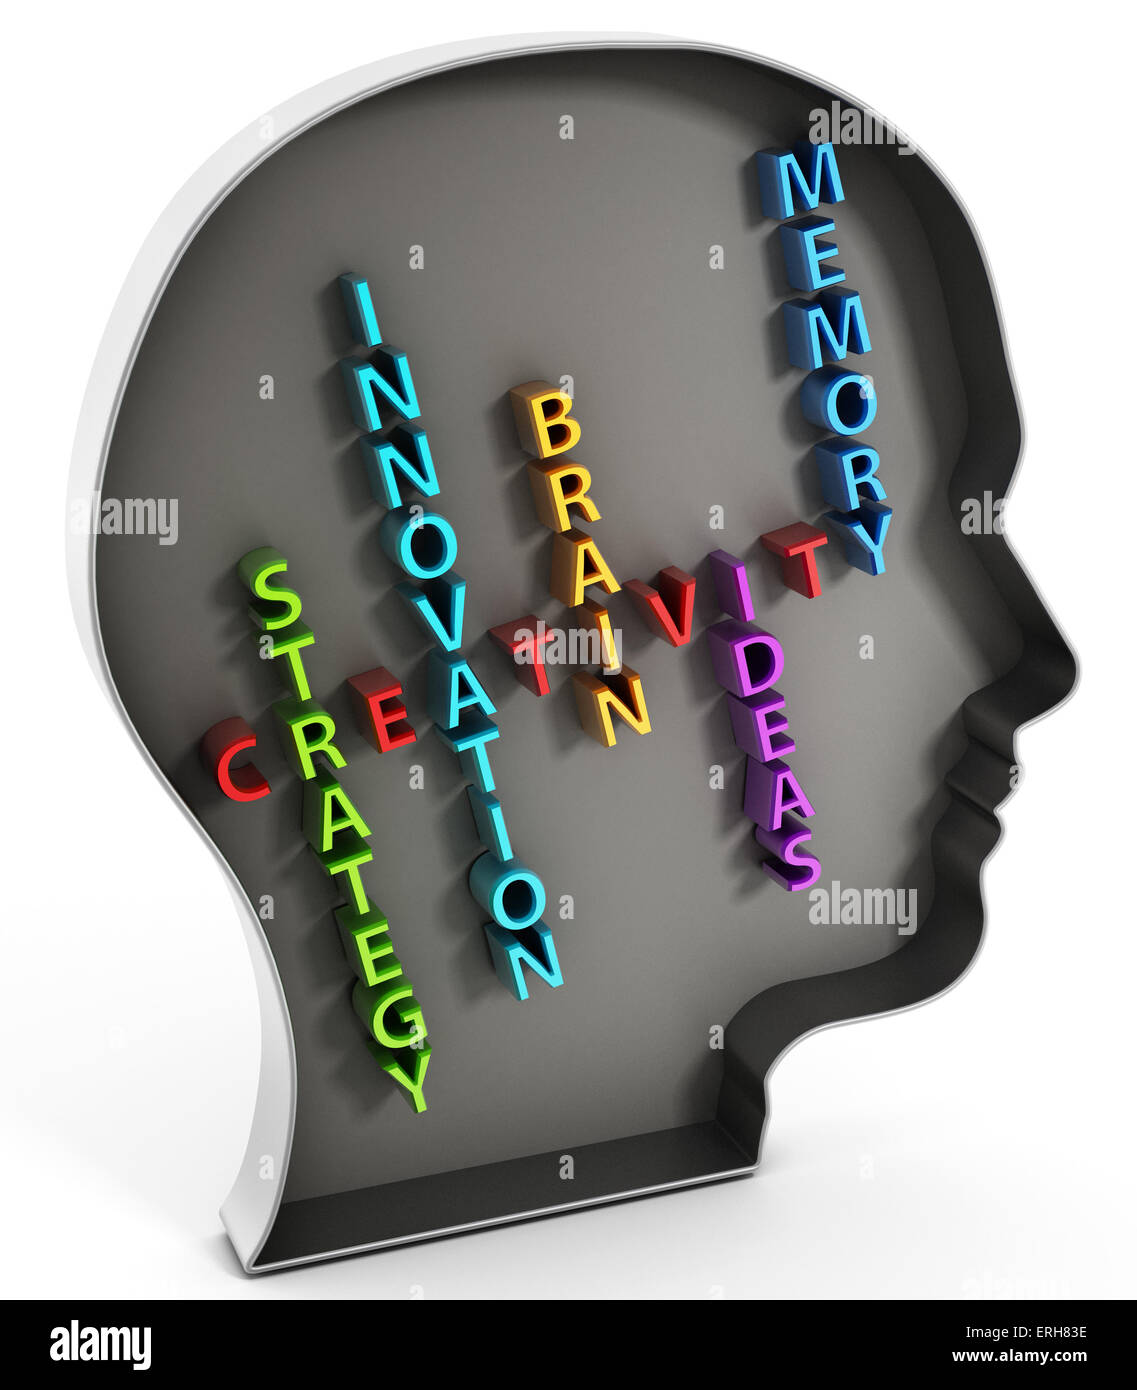 Creativity concept, words inside the head shape. - Stock Image